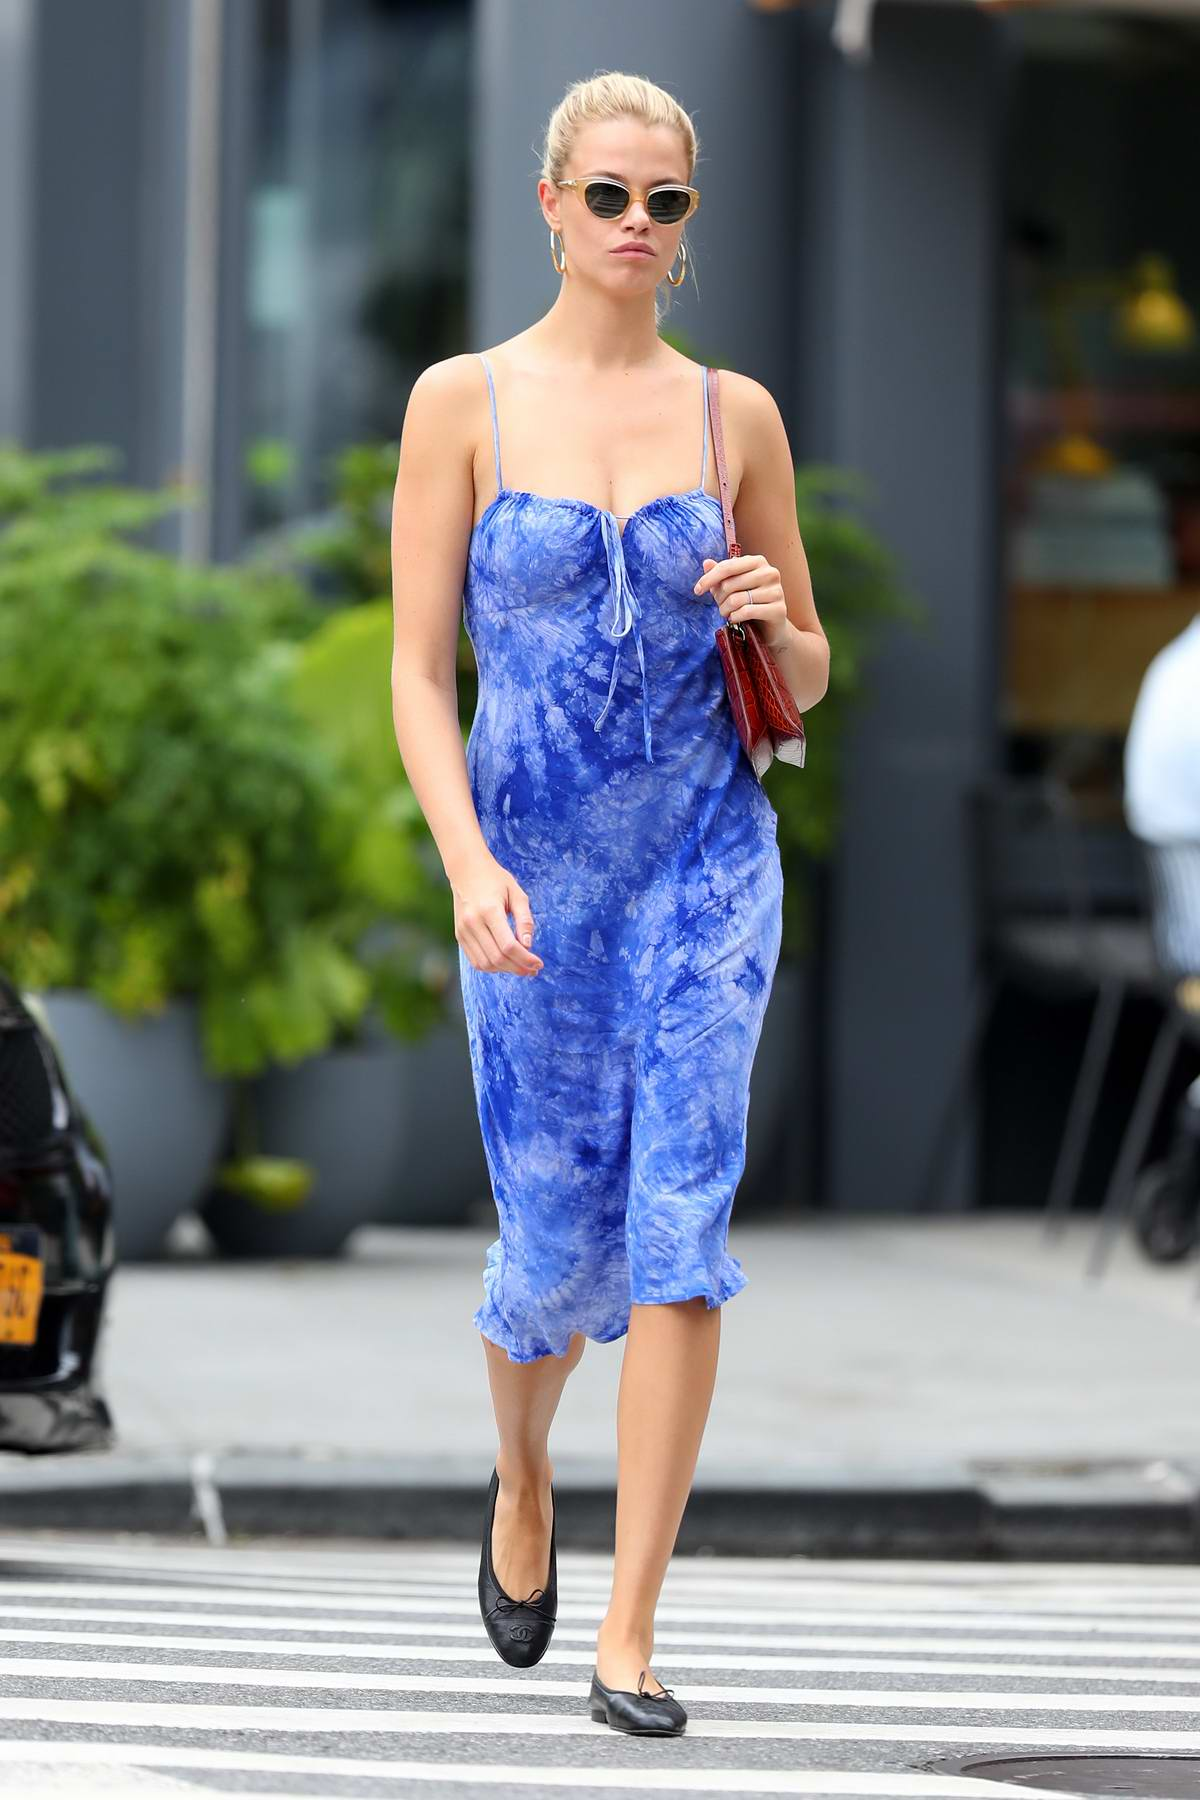 Hailey Clauson steps out wearing a blue dress in New York City